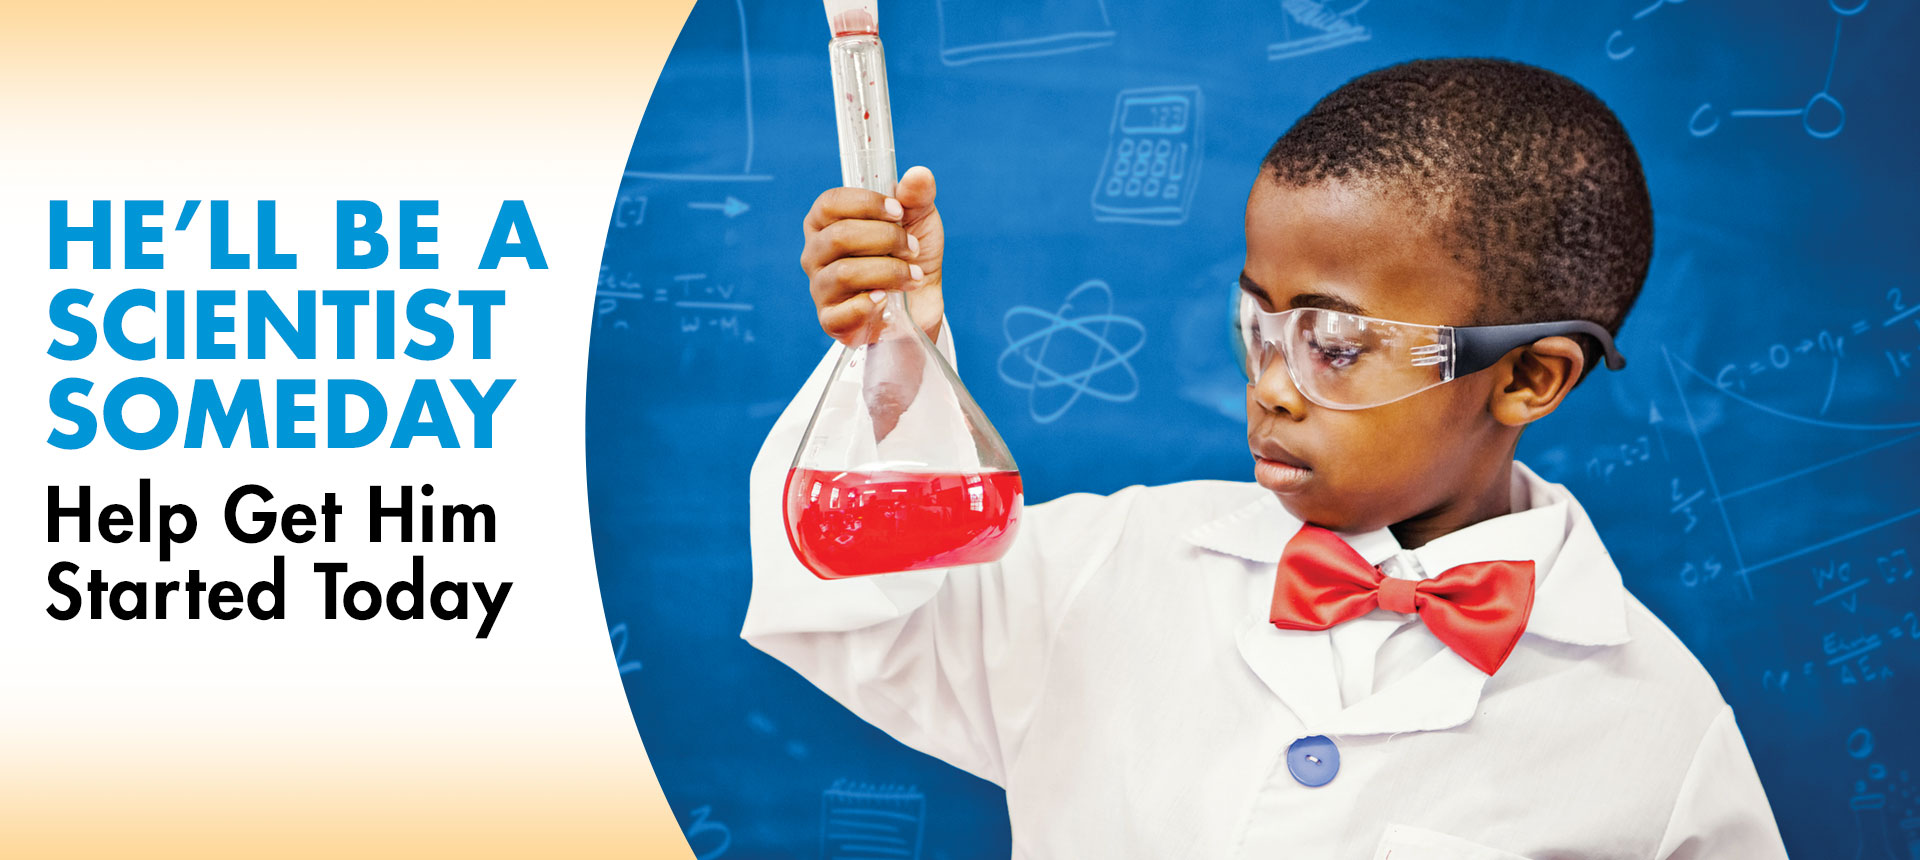 He'll be a scientist someday  | Help Get her started today